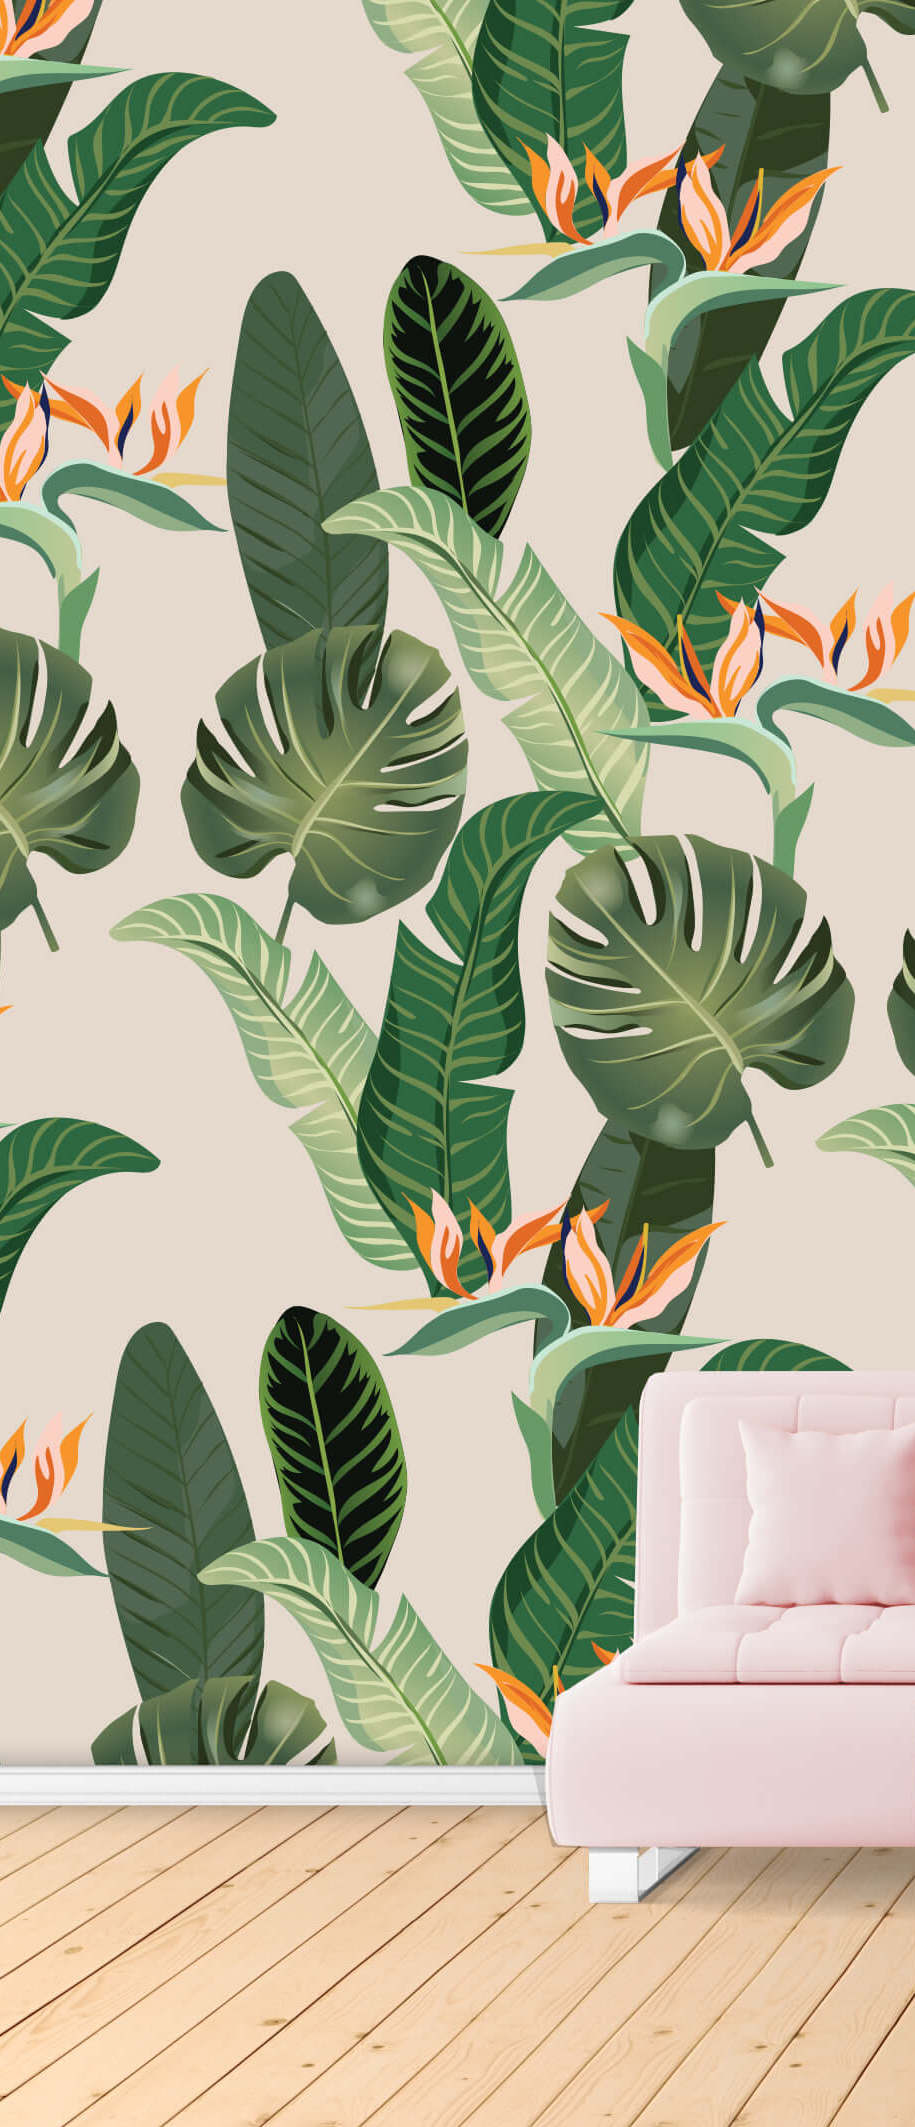 tropical-pattern-wallpaper-2-loolaadesigns copy 3.jpg